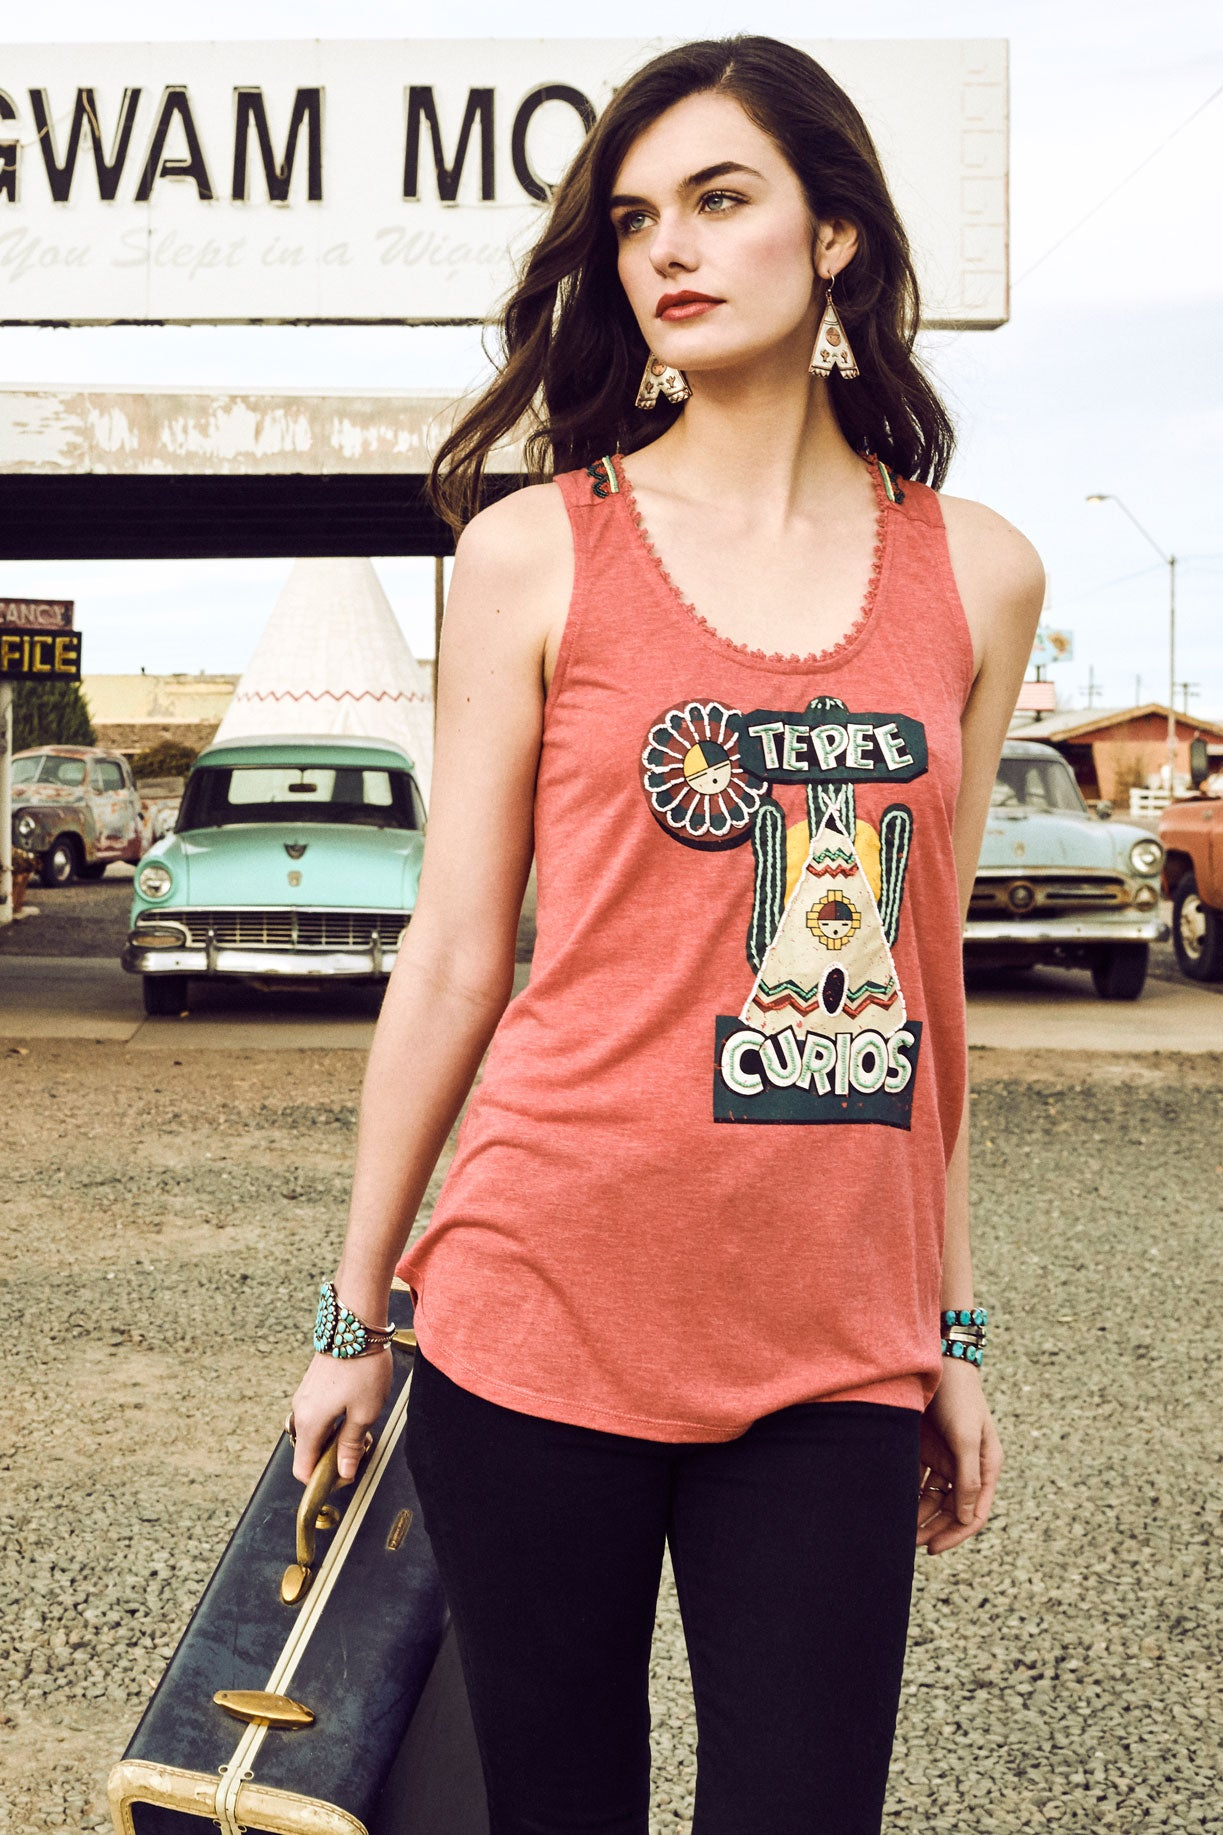 Curios Tepee Tank - Outlet